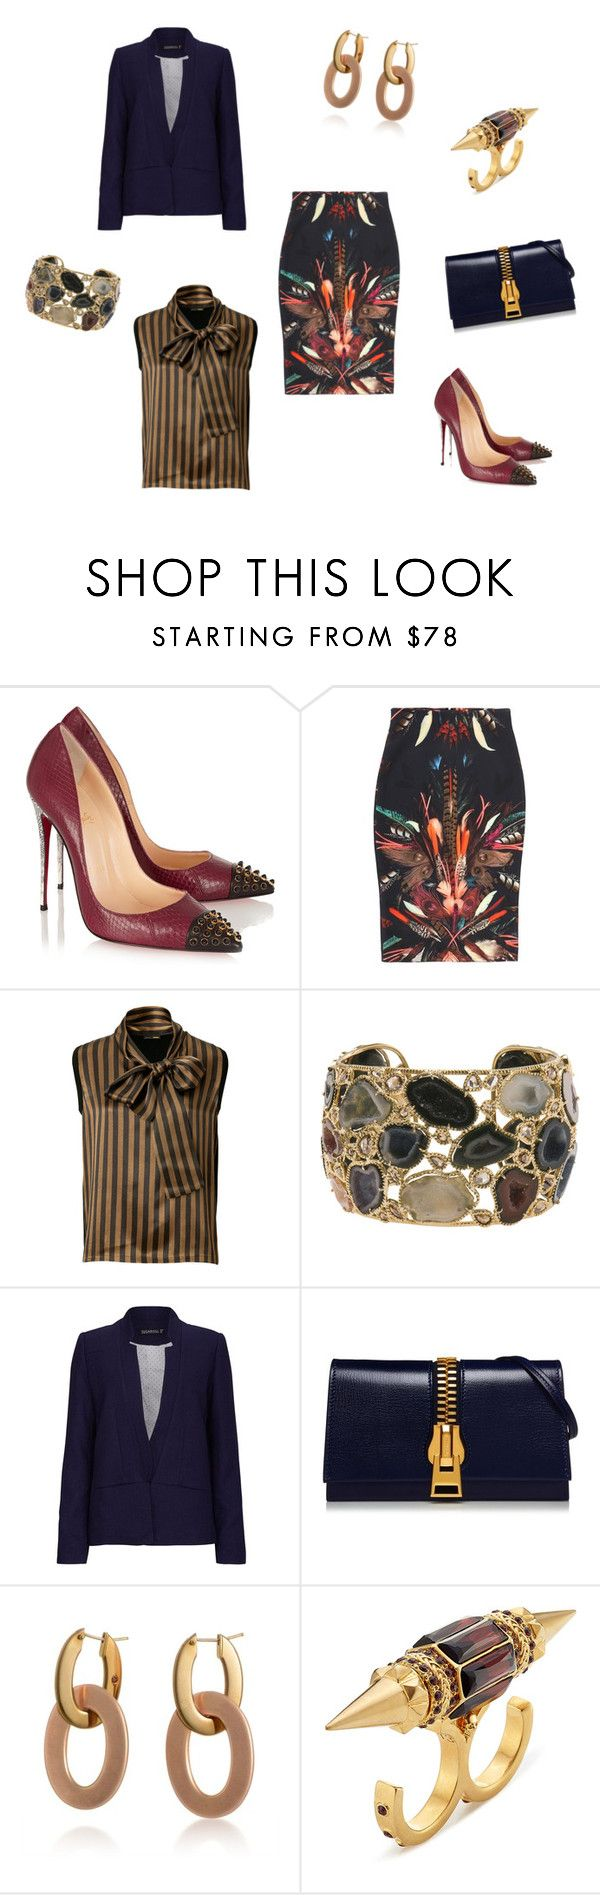 """""""Untitled #239"""" by joshua-d-tyson ❤ liked on Polyvore featuring Christian Louboutin, Nicole Miller, Fendi, Kimberly McDonald, Sugarhill Boutique, Roberto Coin and Alexander McQueen"""